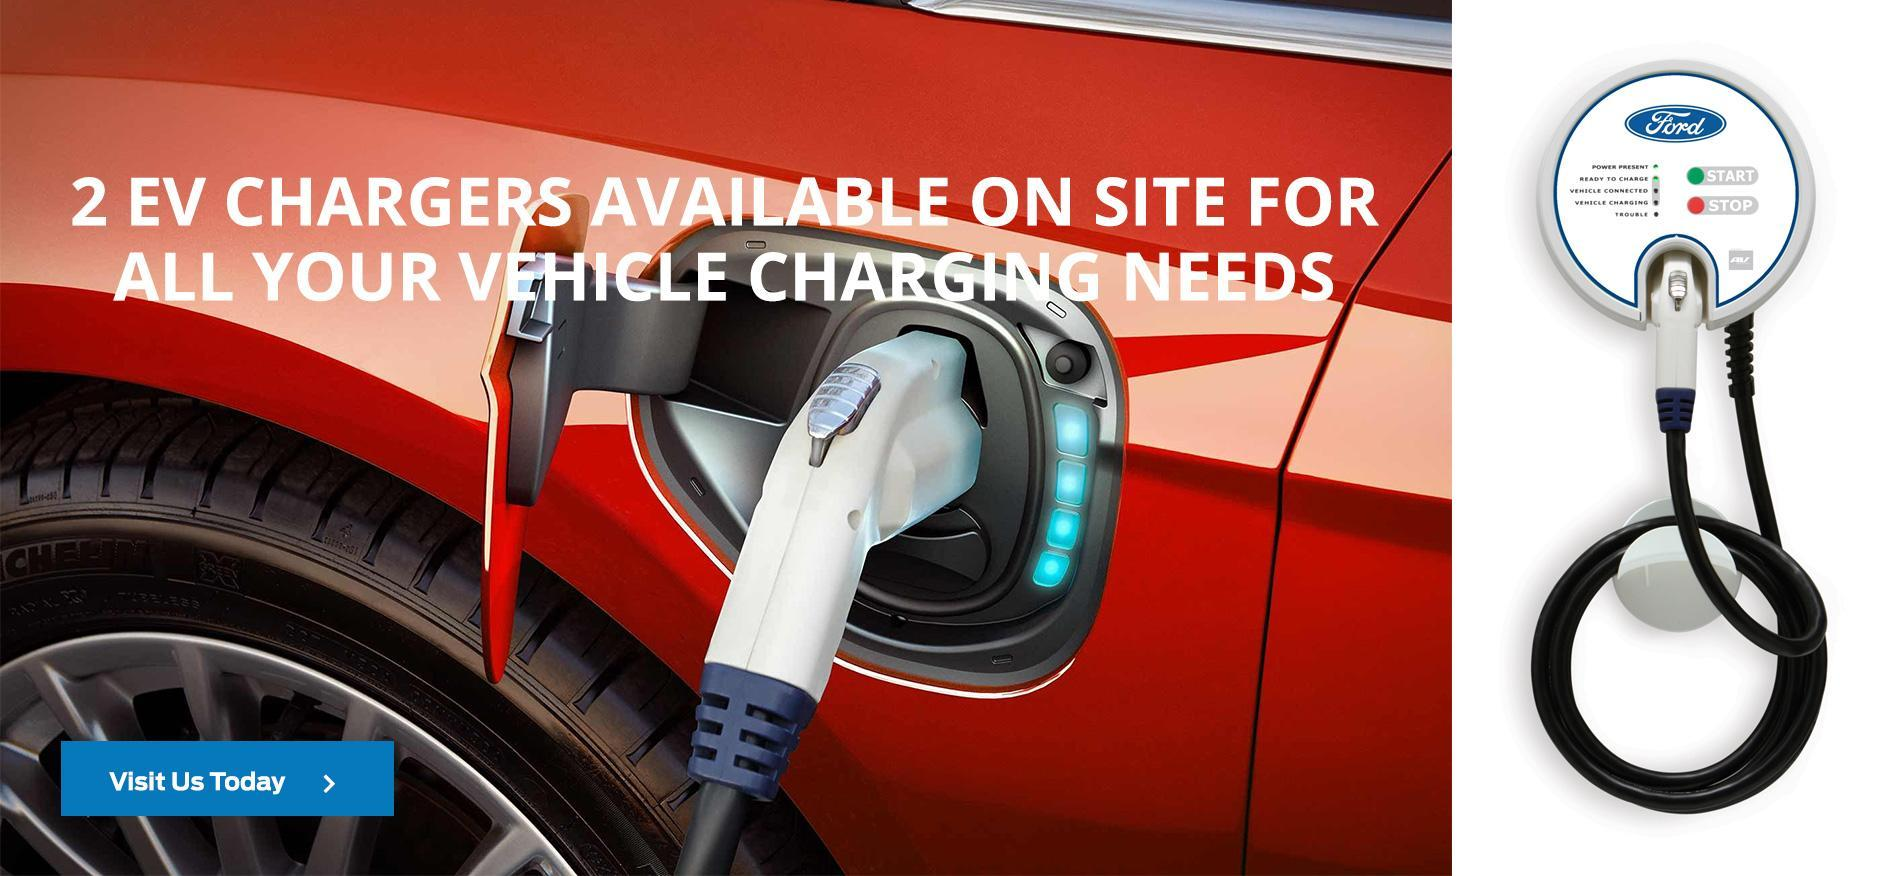 EV Chargers Available